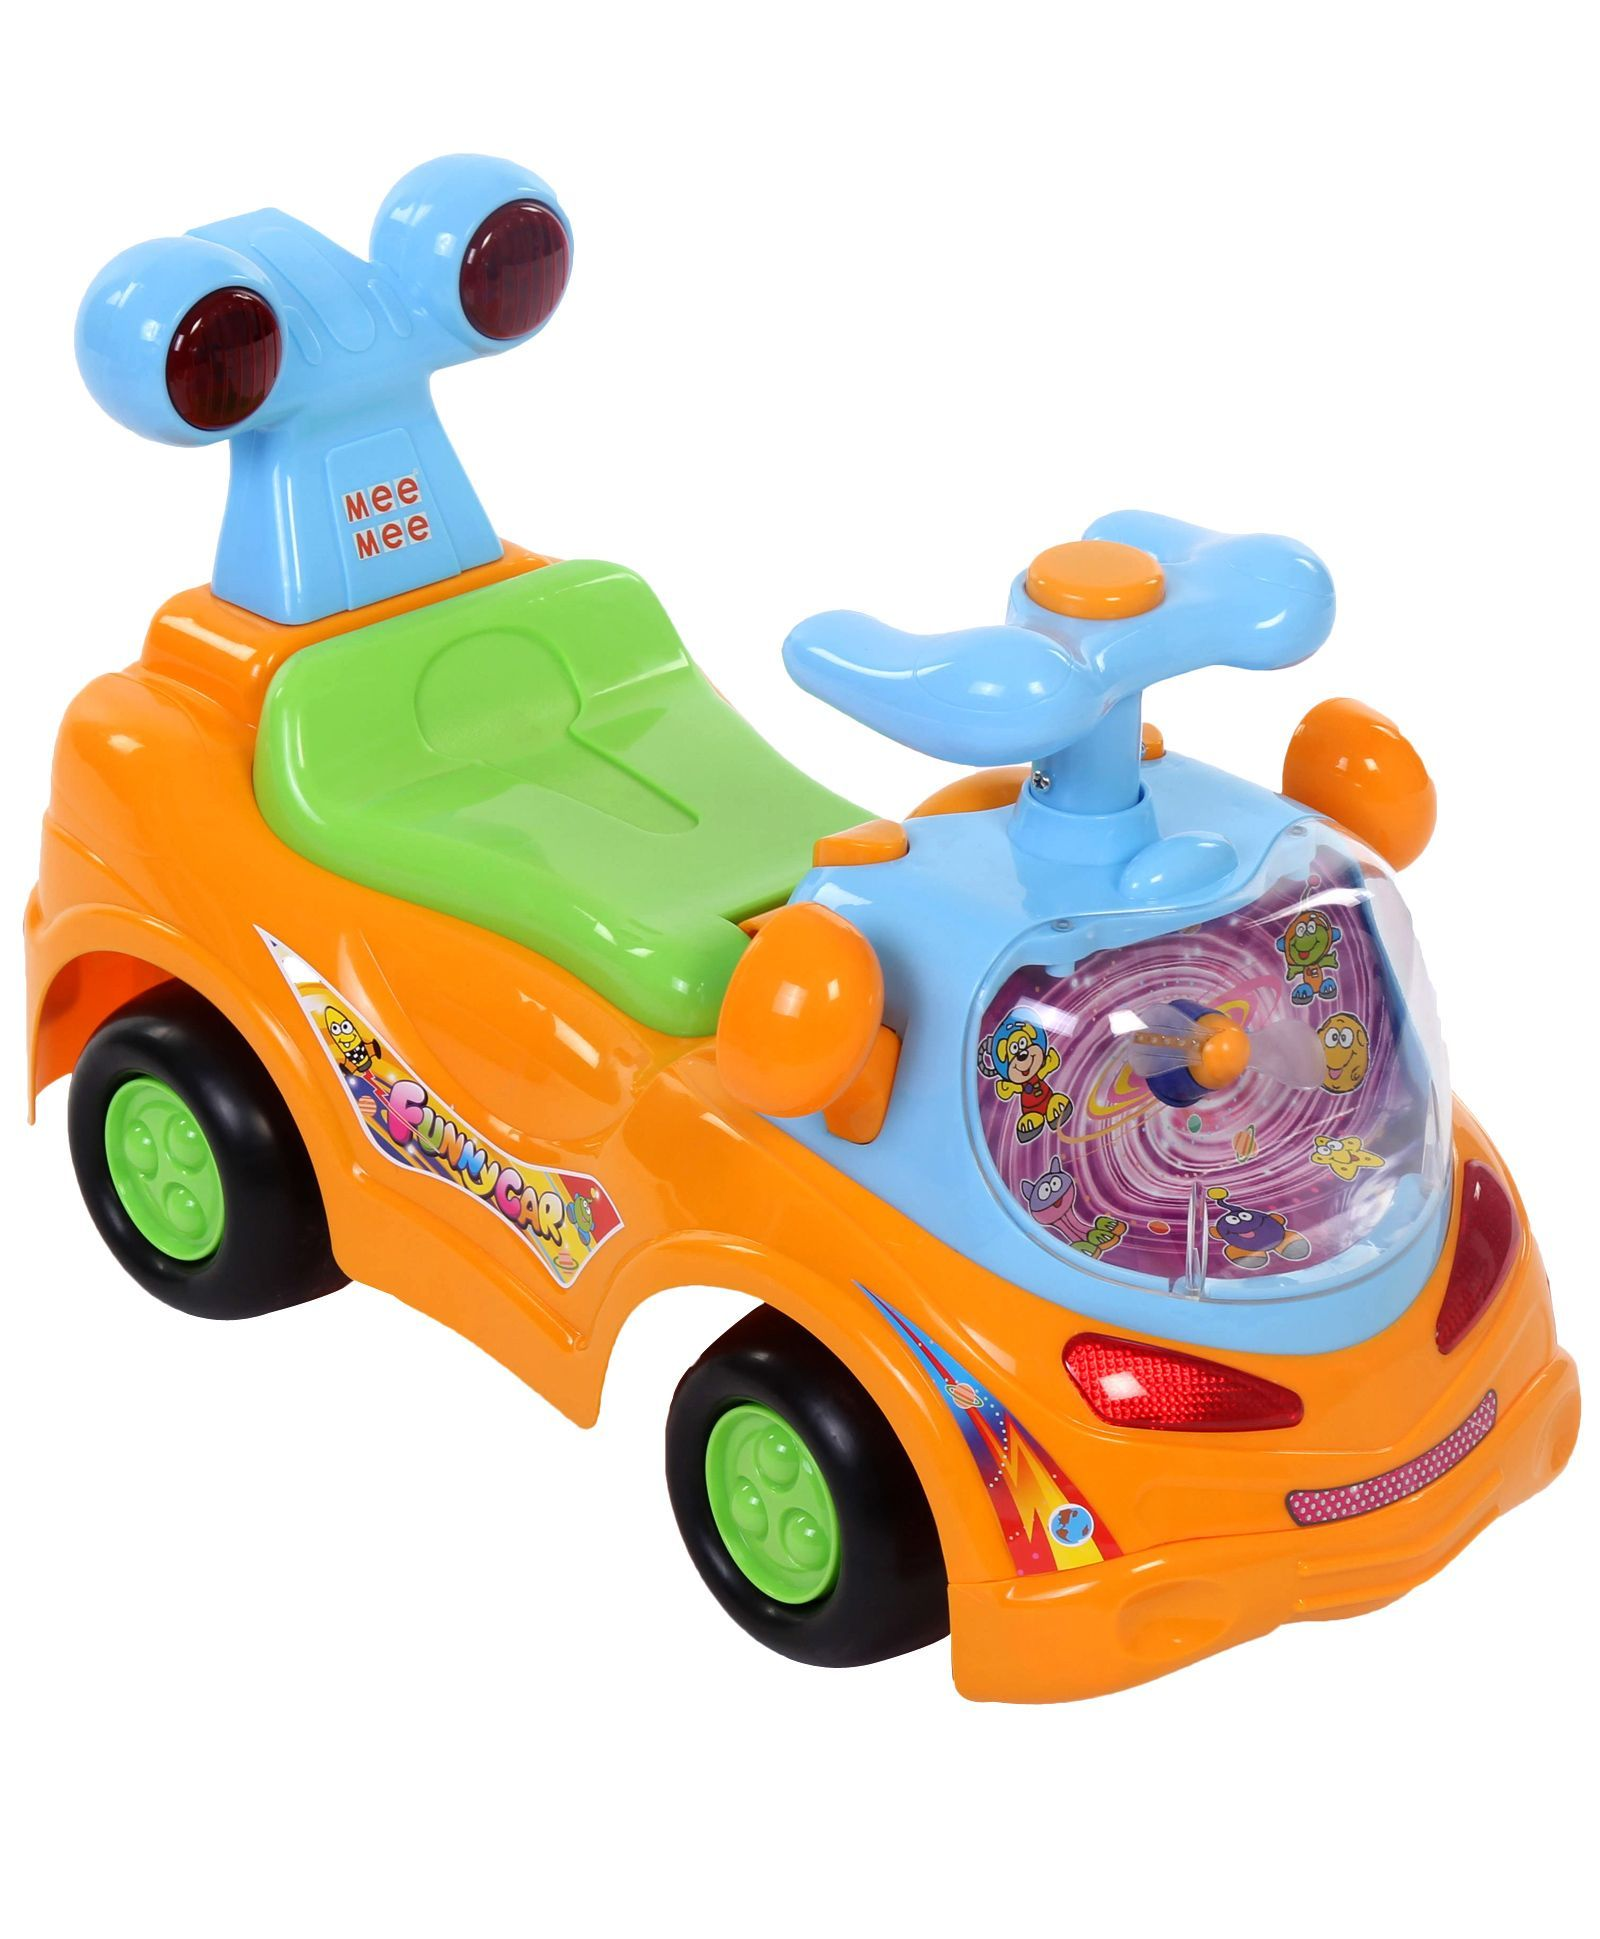 FirstCry cars bikes cycles rideons kids baby shop shopping